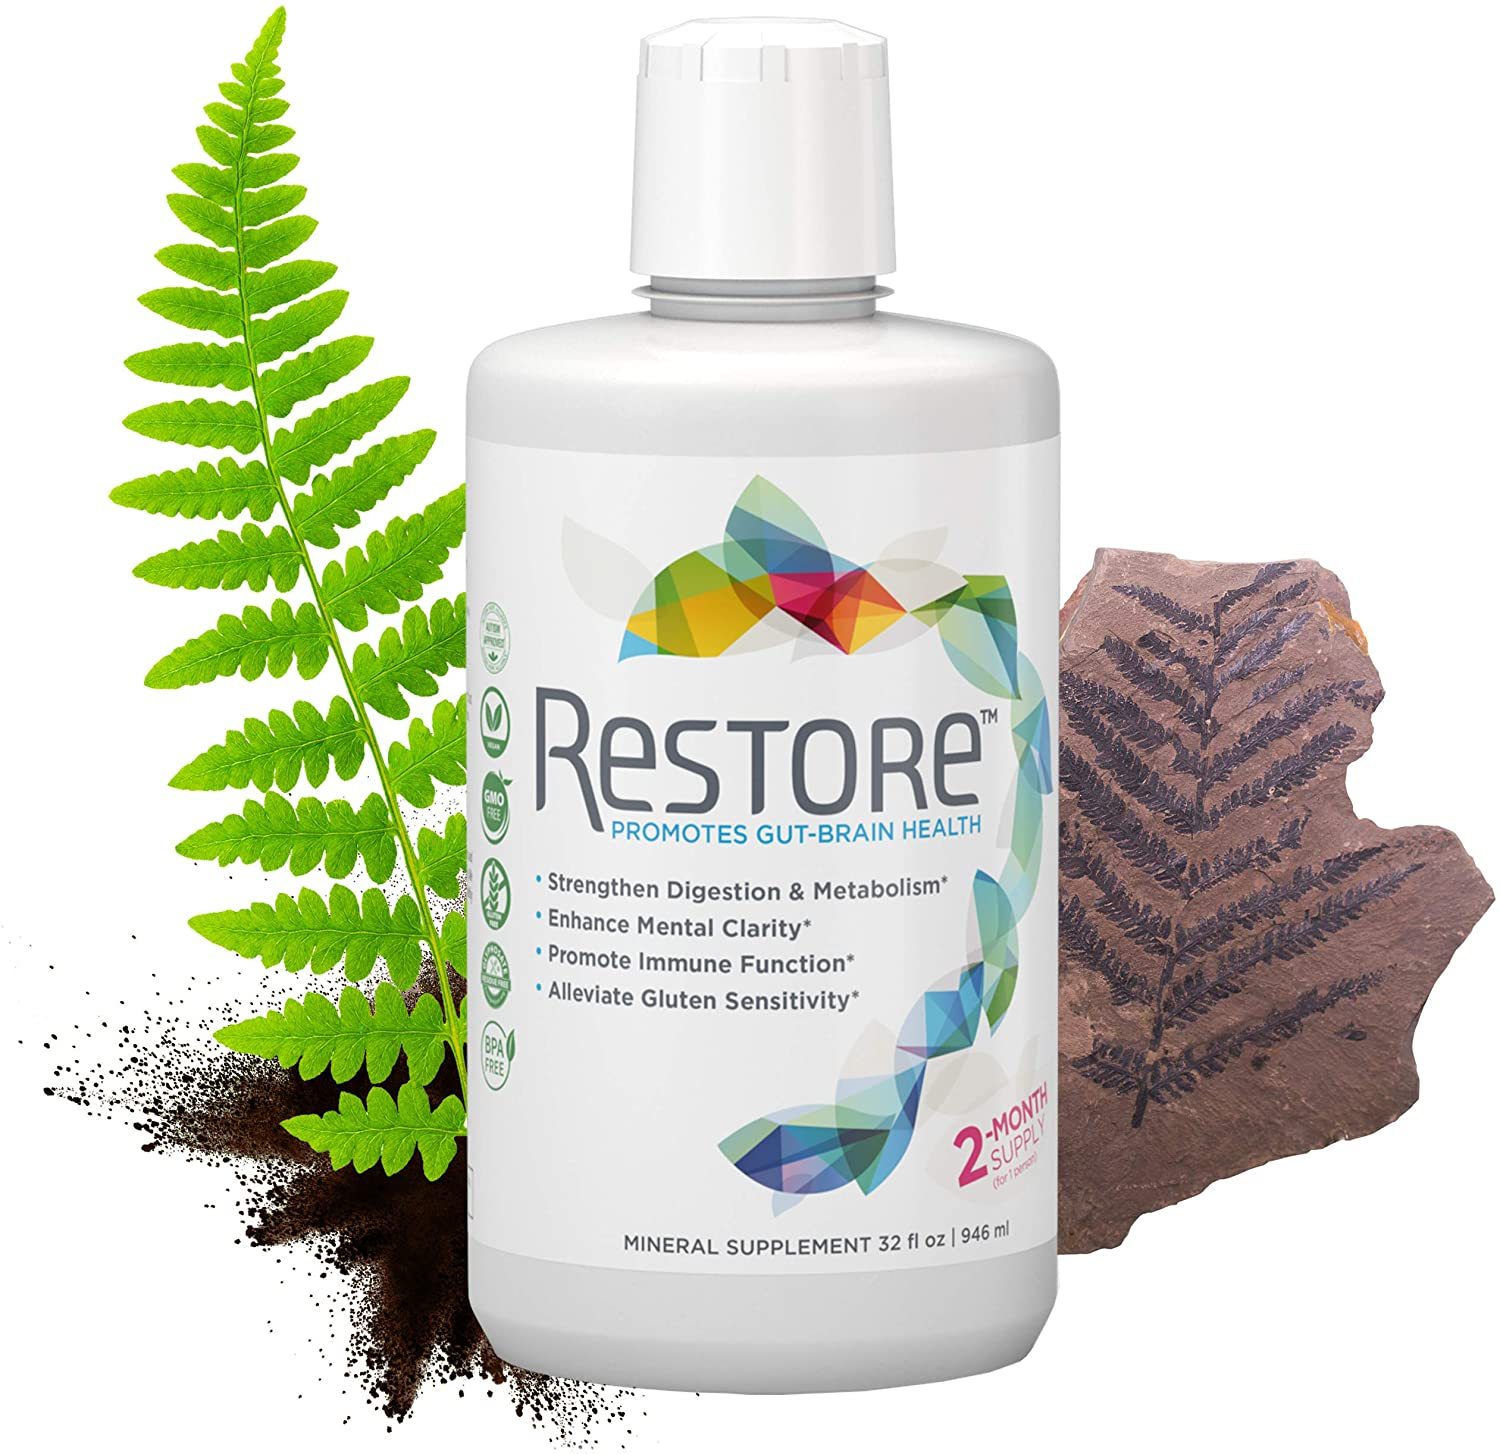 Restore Promotes Gut-Brain Health